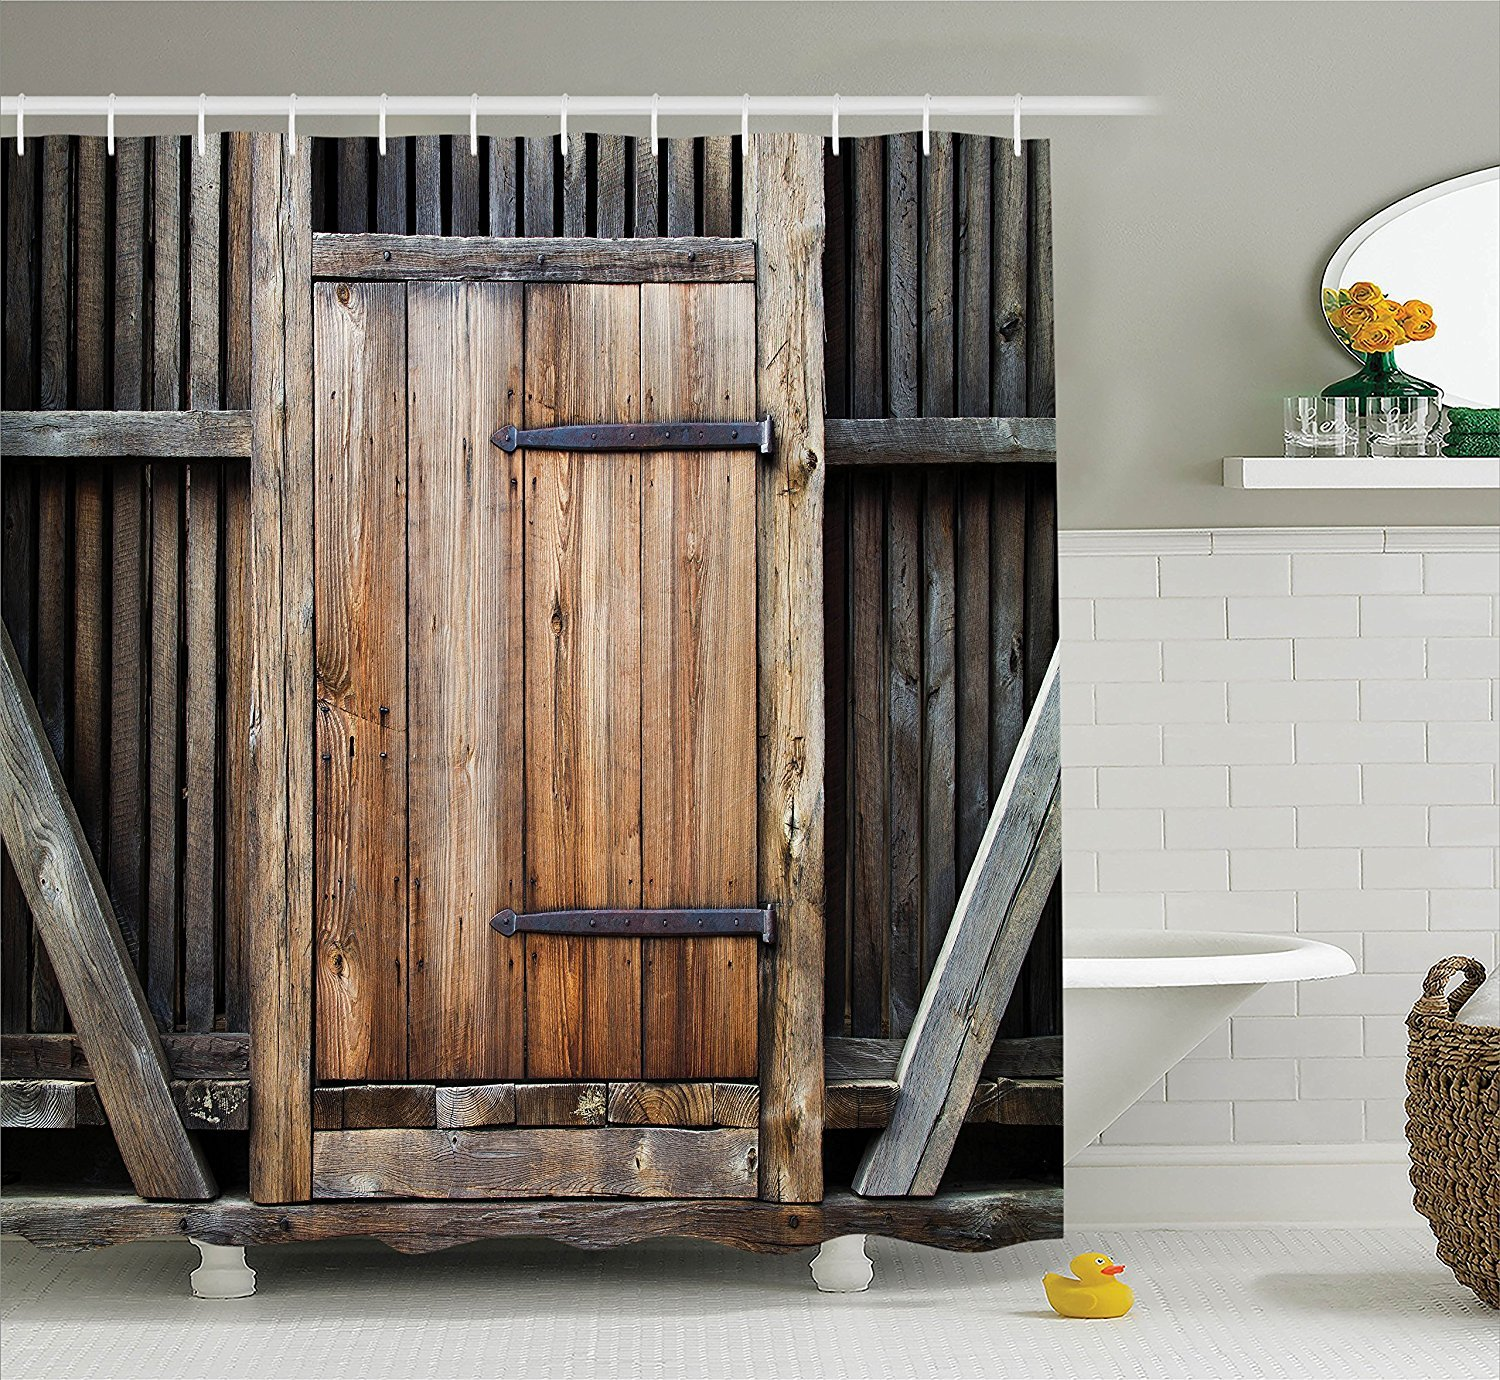 71x71 In Wooden Door Of The Entrance To The Barn Shower